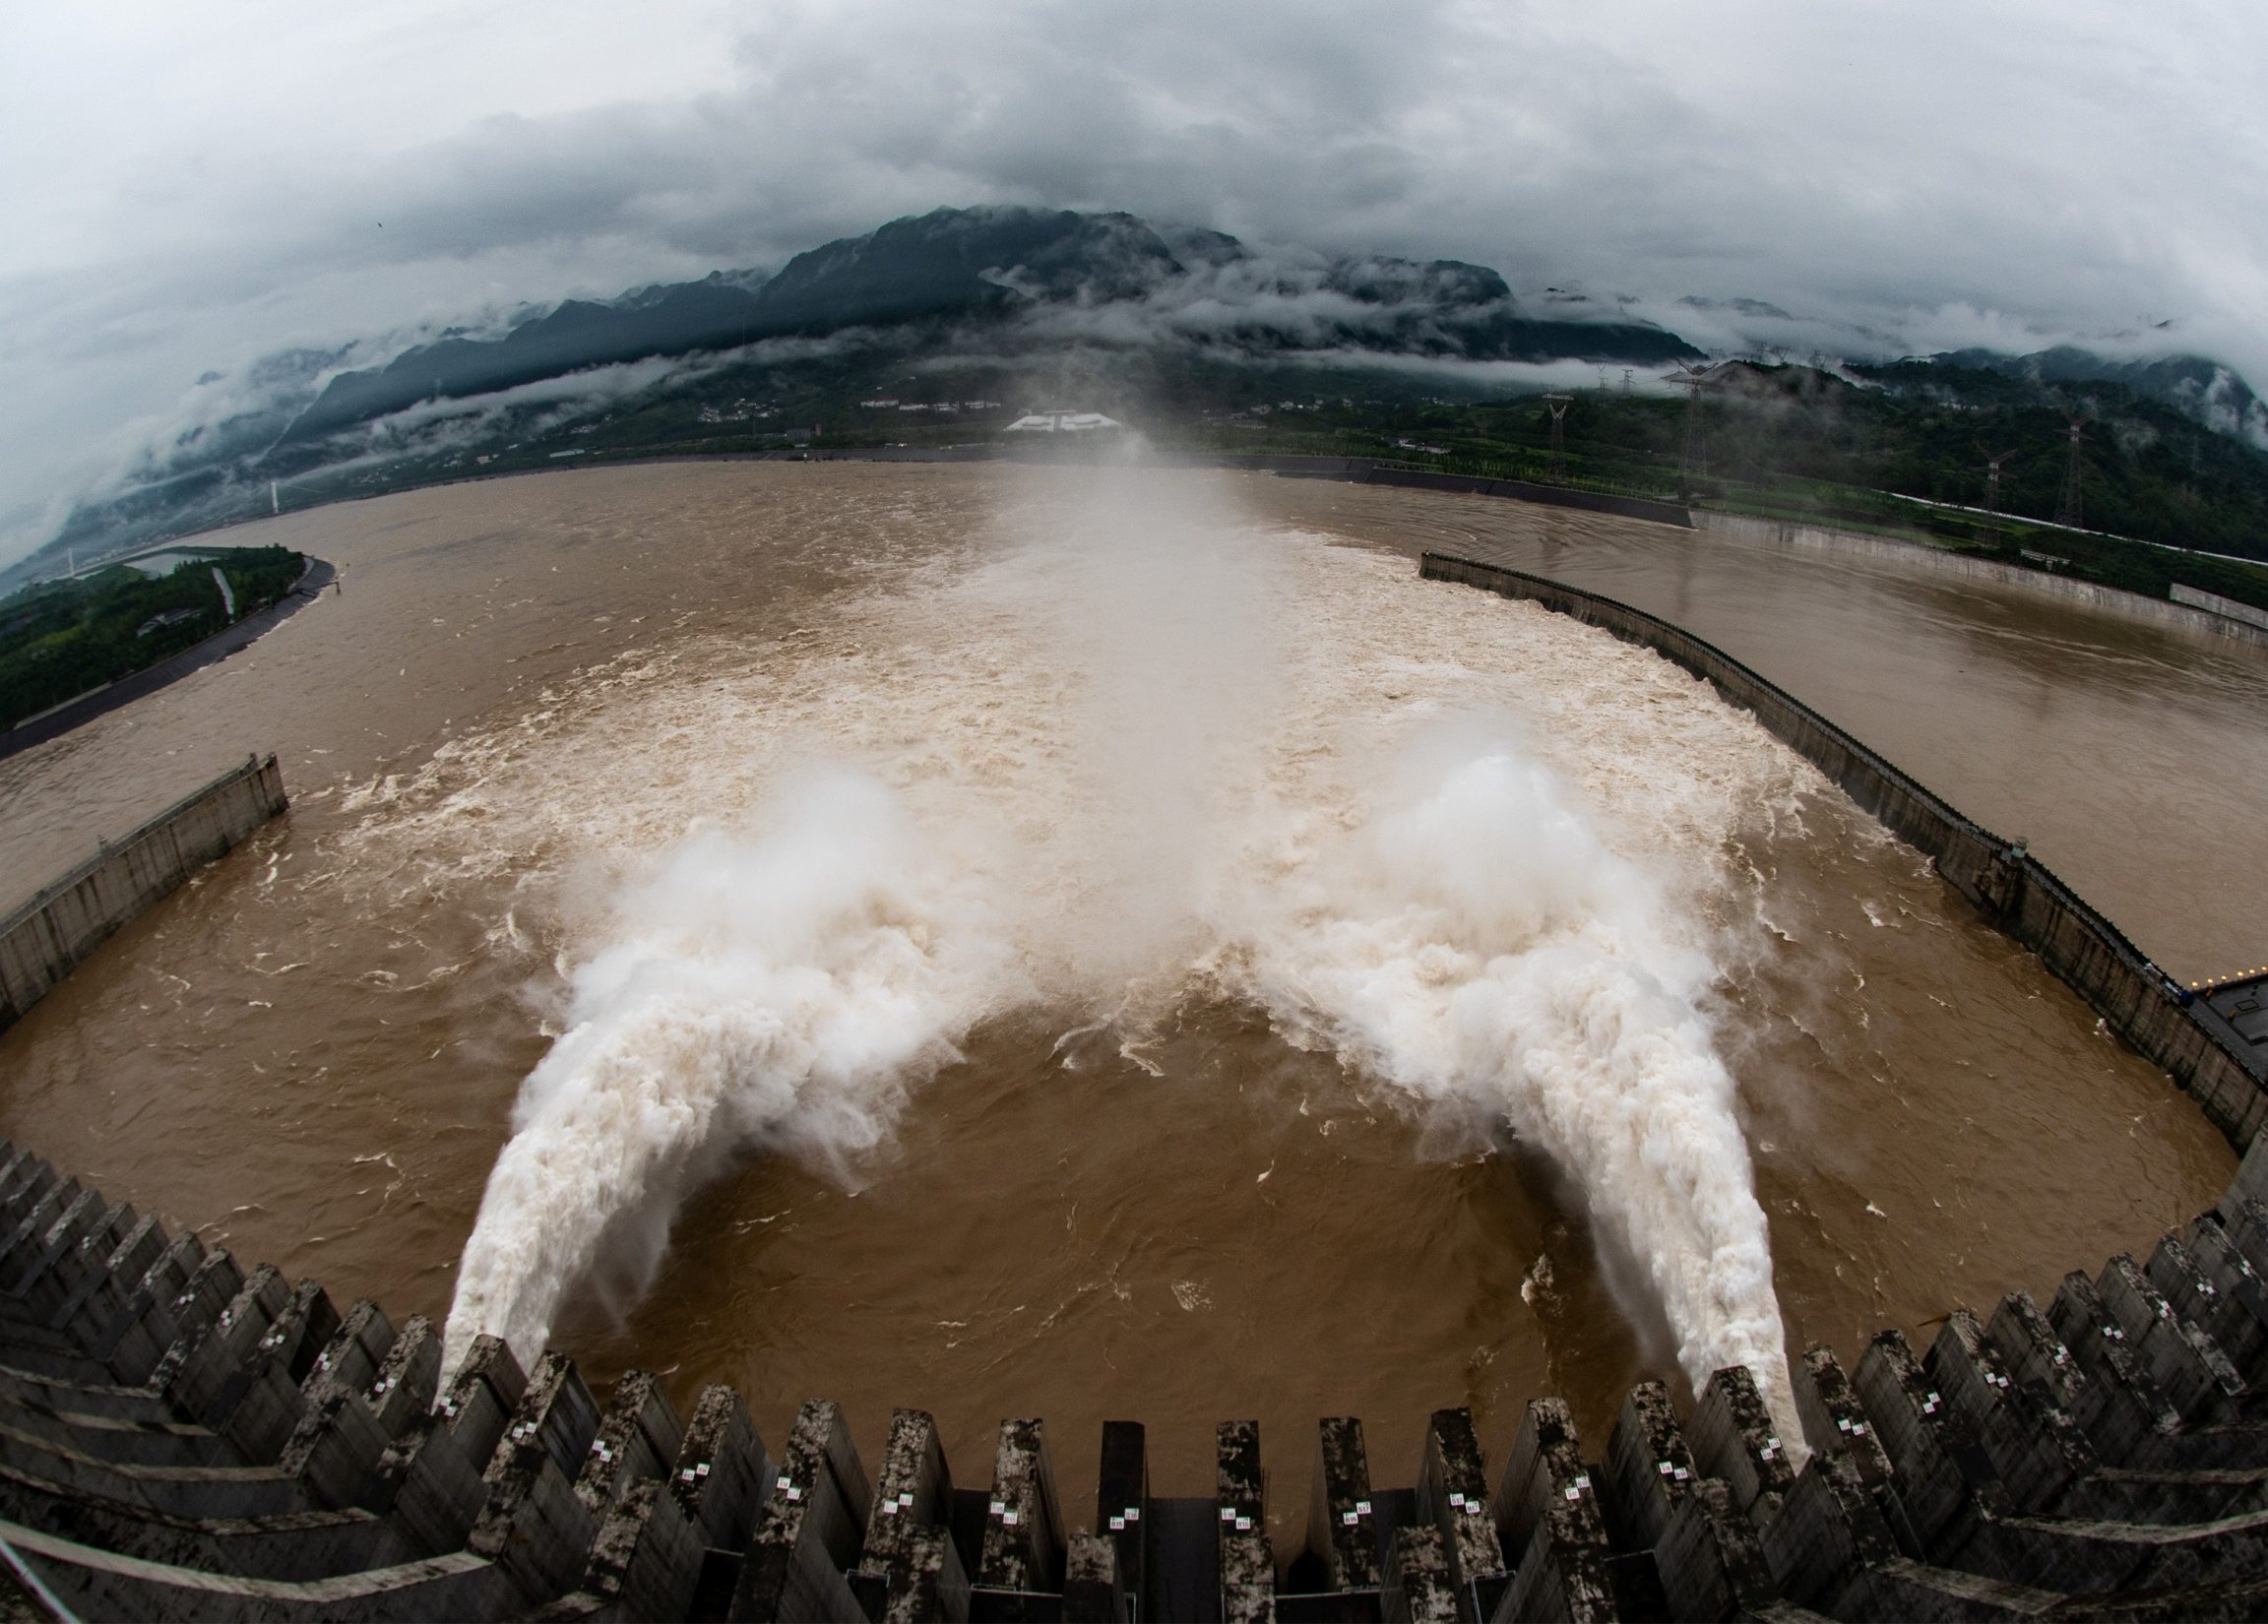 A gush of water discharges to lower water levels from the Three Gorges Dam